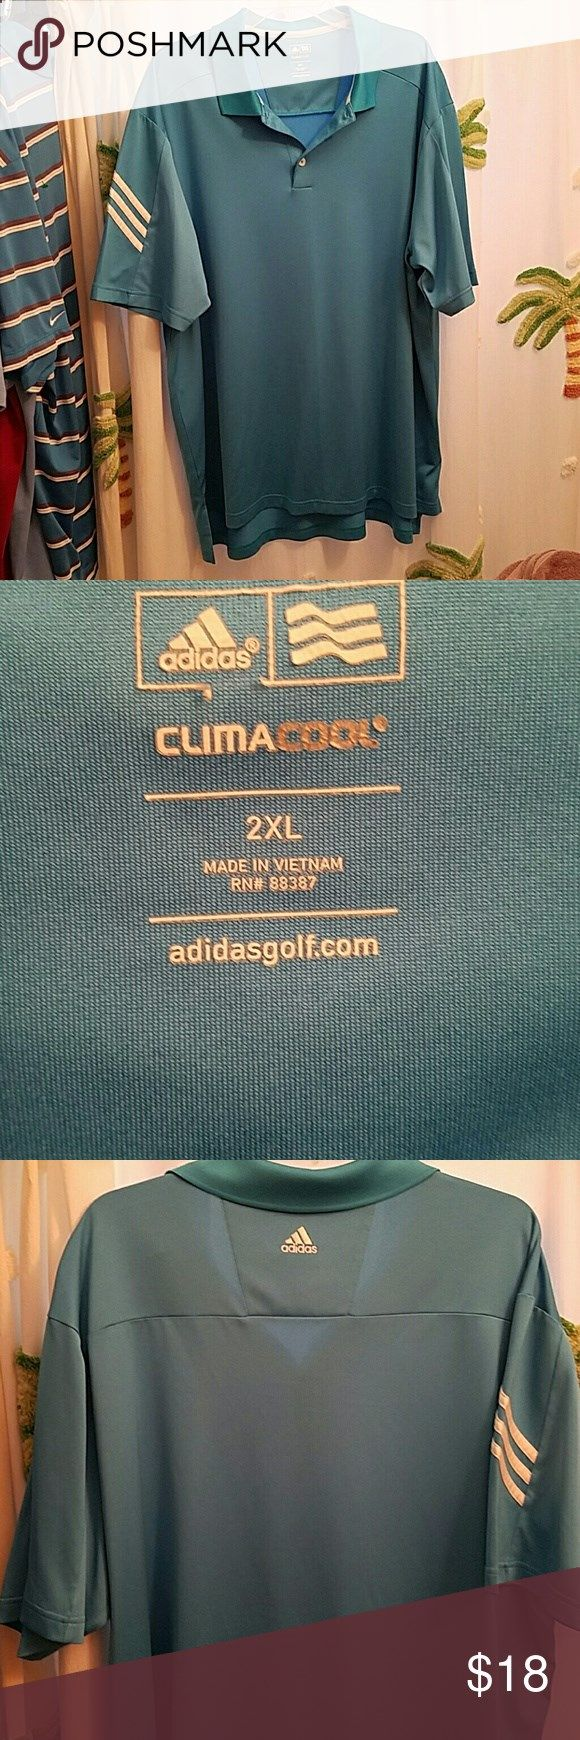 Golf Shirts - Adidas mens golf shirt size 2XL Adidas climacool mens golf shirt size 2XL in EUC. I do discount if you bundle 2 or more Adidas Shirts Polos